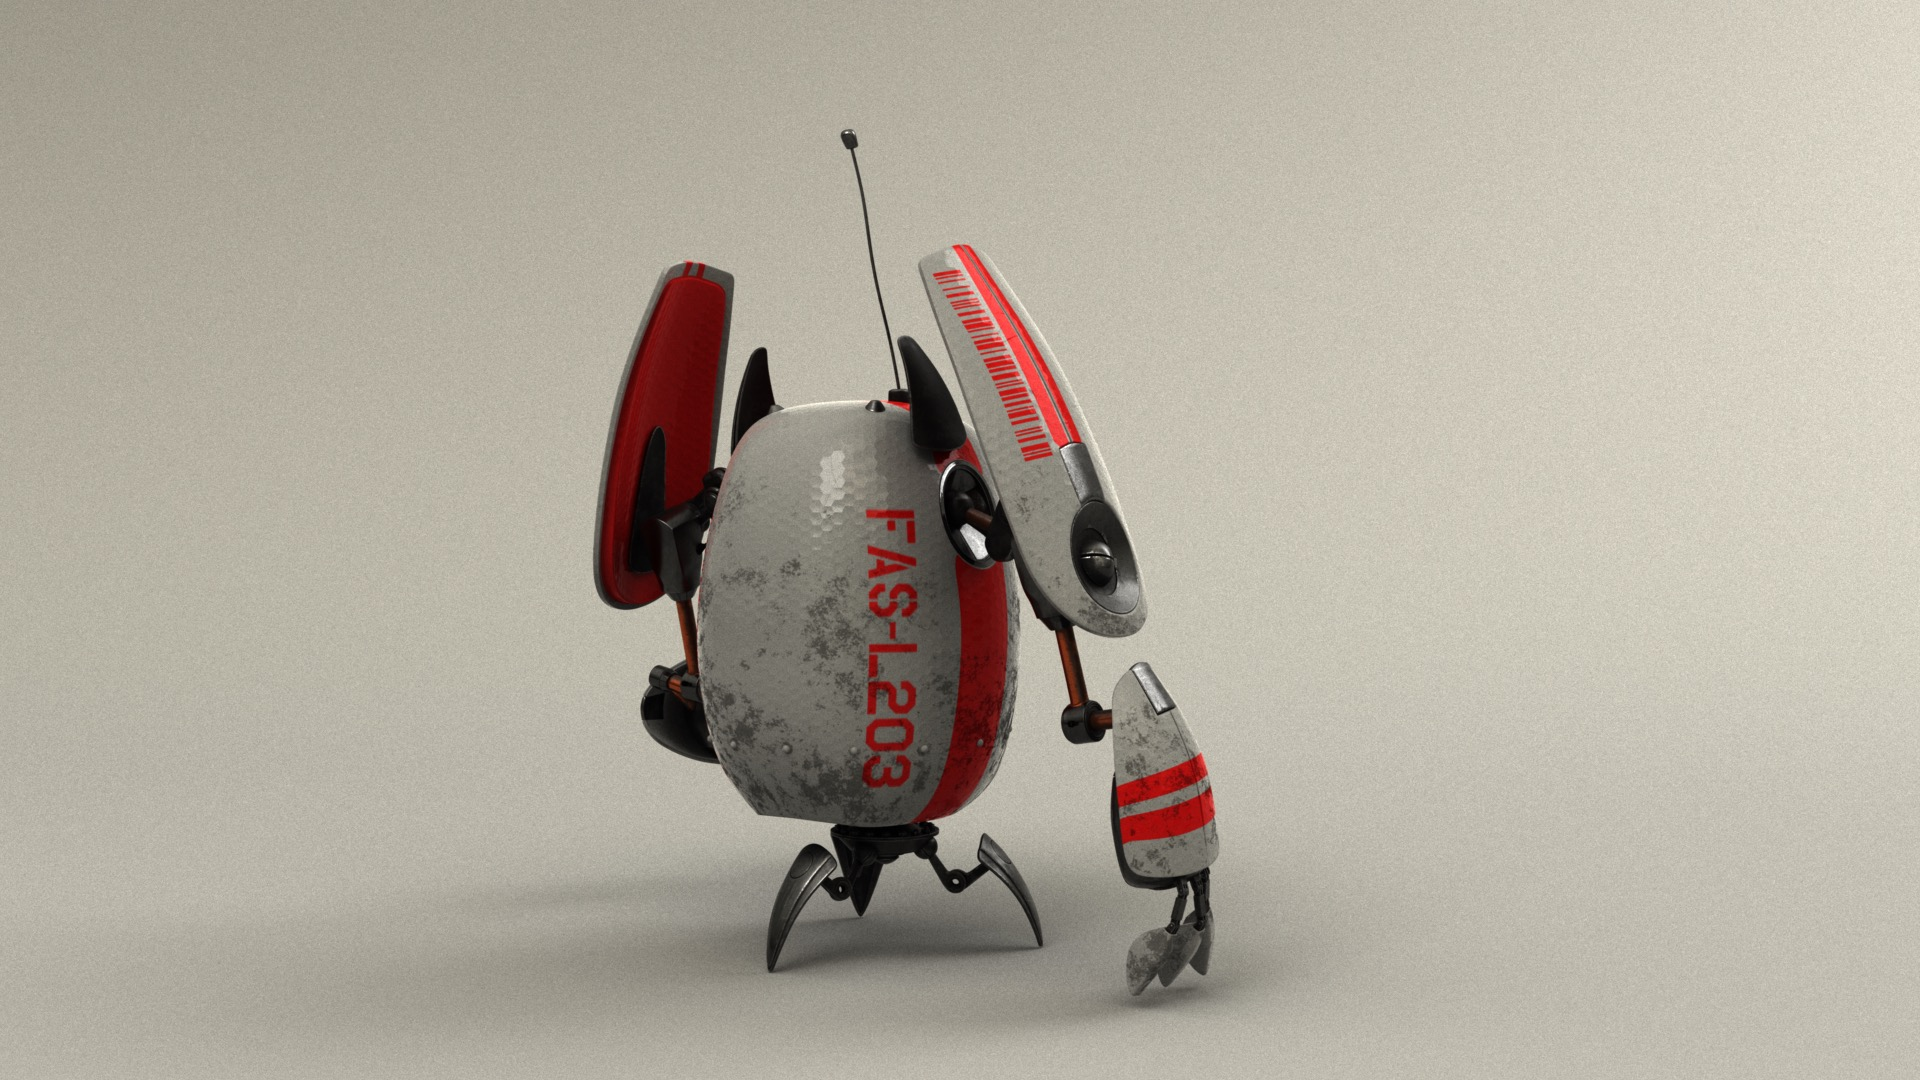 Figure 18: Futuristic robot with glossy white outer shell and red accents.